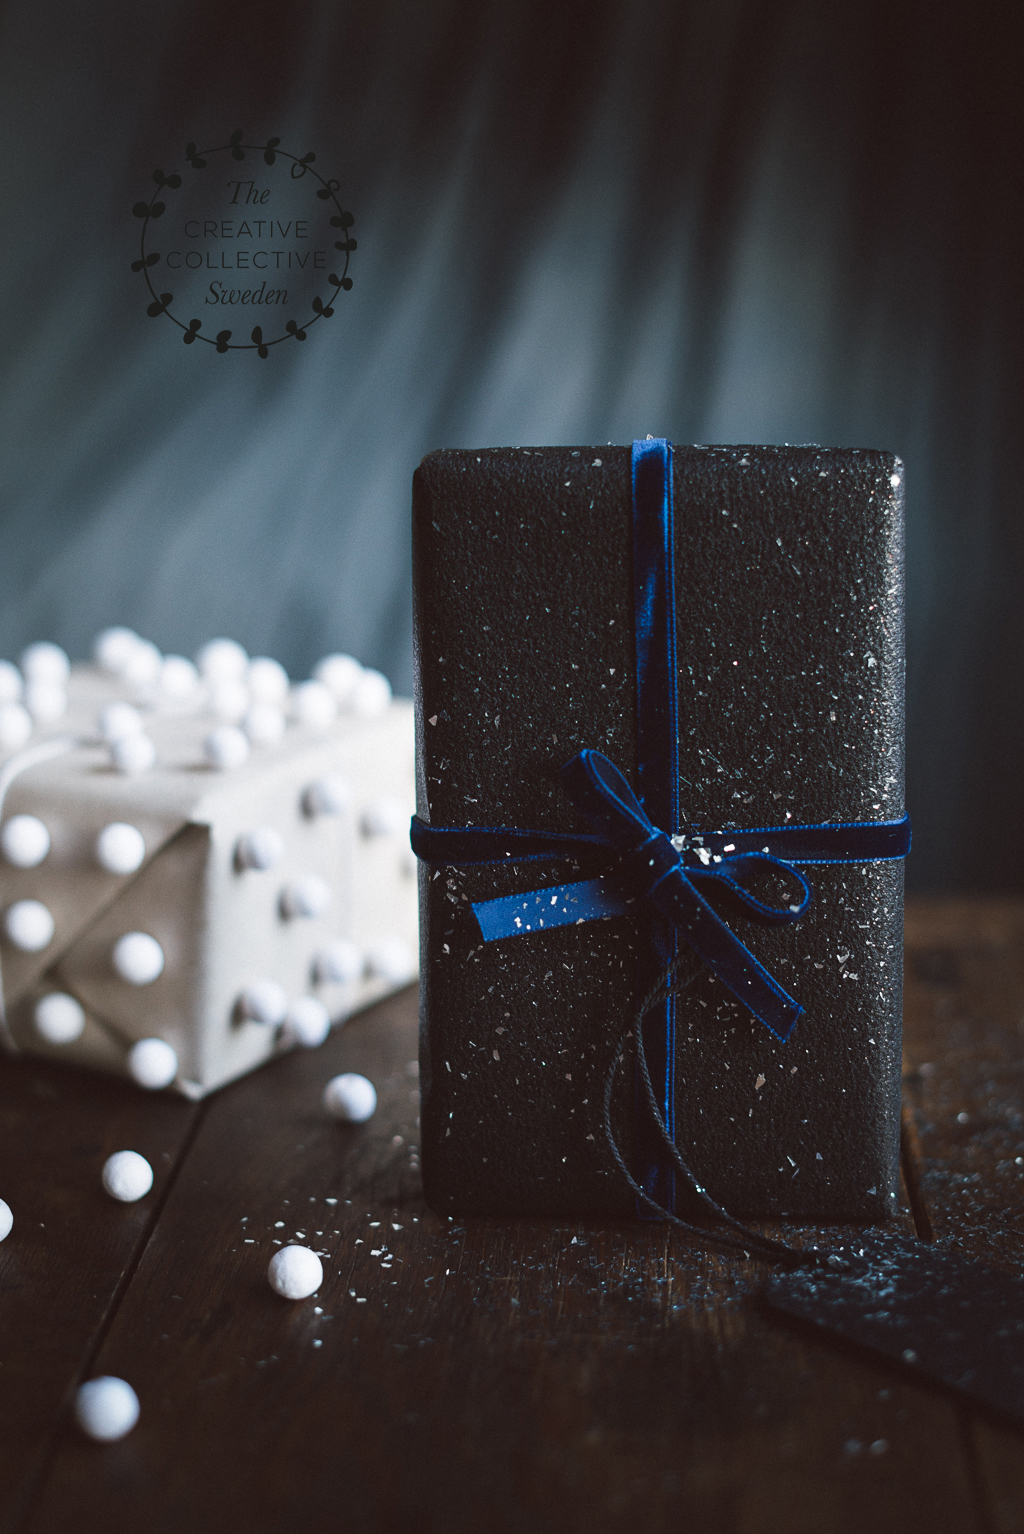 Creative wrapping by Babes in Boyland